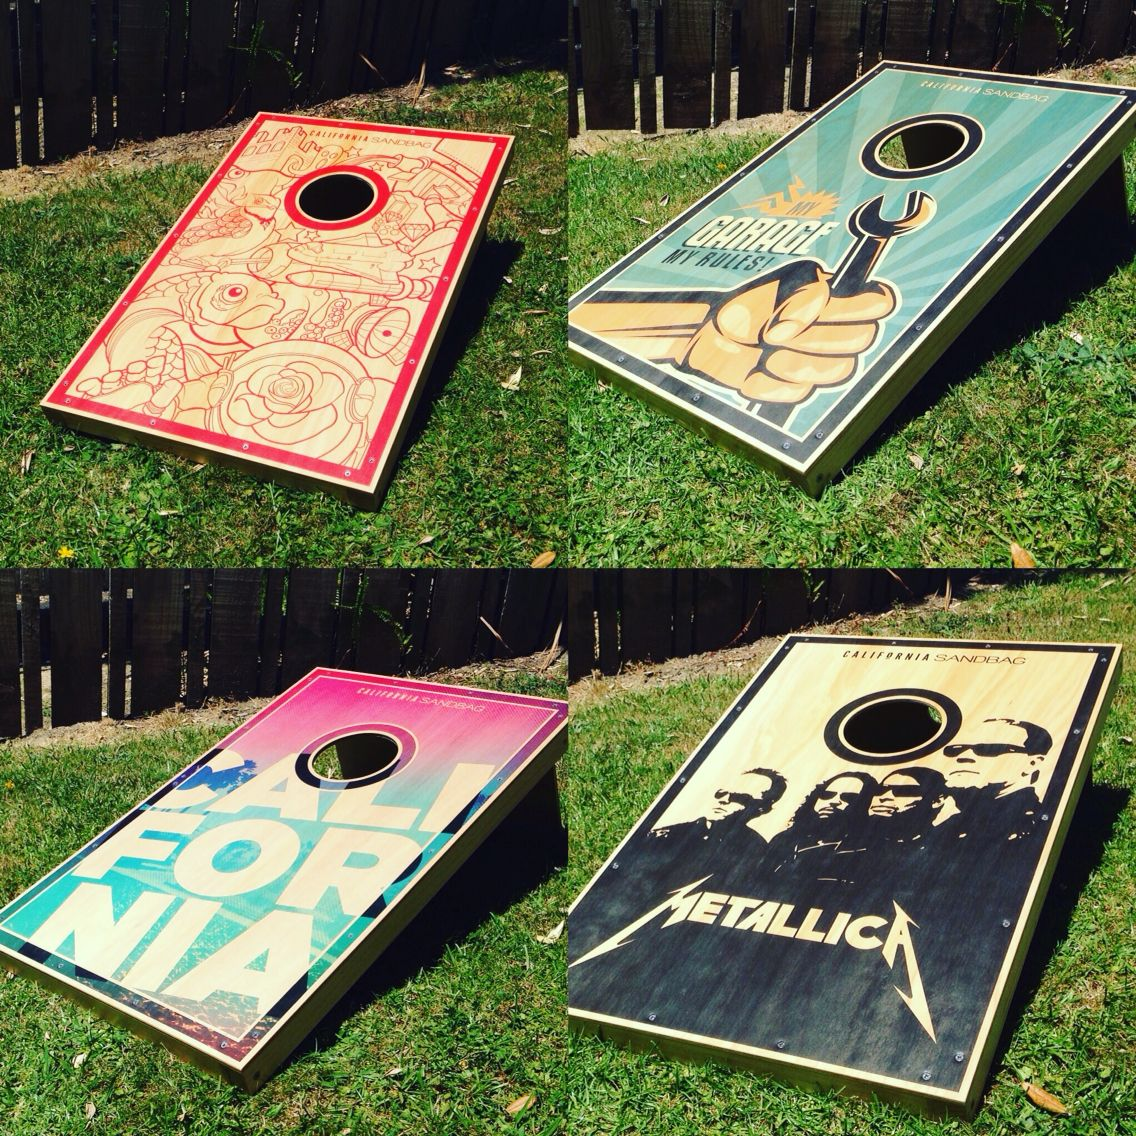 Groovy Custom Board California Sandbag New Zealand Corn Hole Pdpeps Interior Chair Design Pdpepsorg